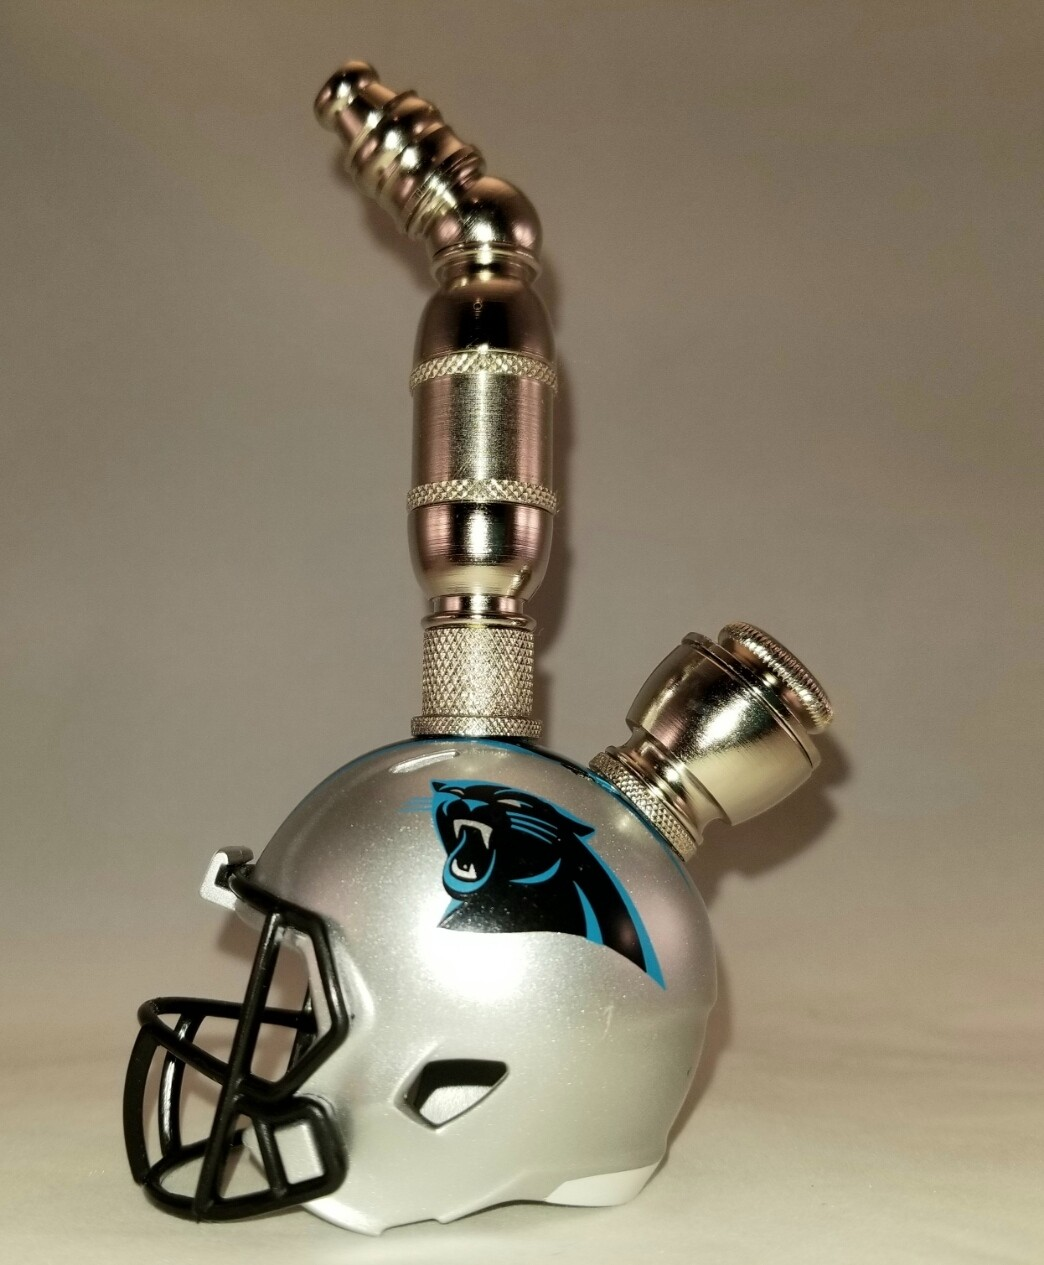 CAROLINA PANTHERS NFL FOOTBALL HELMET SMOKING PIPE Nickel/Upright